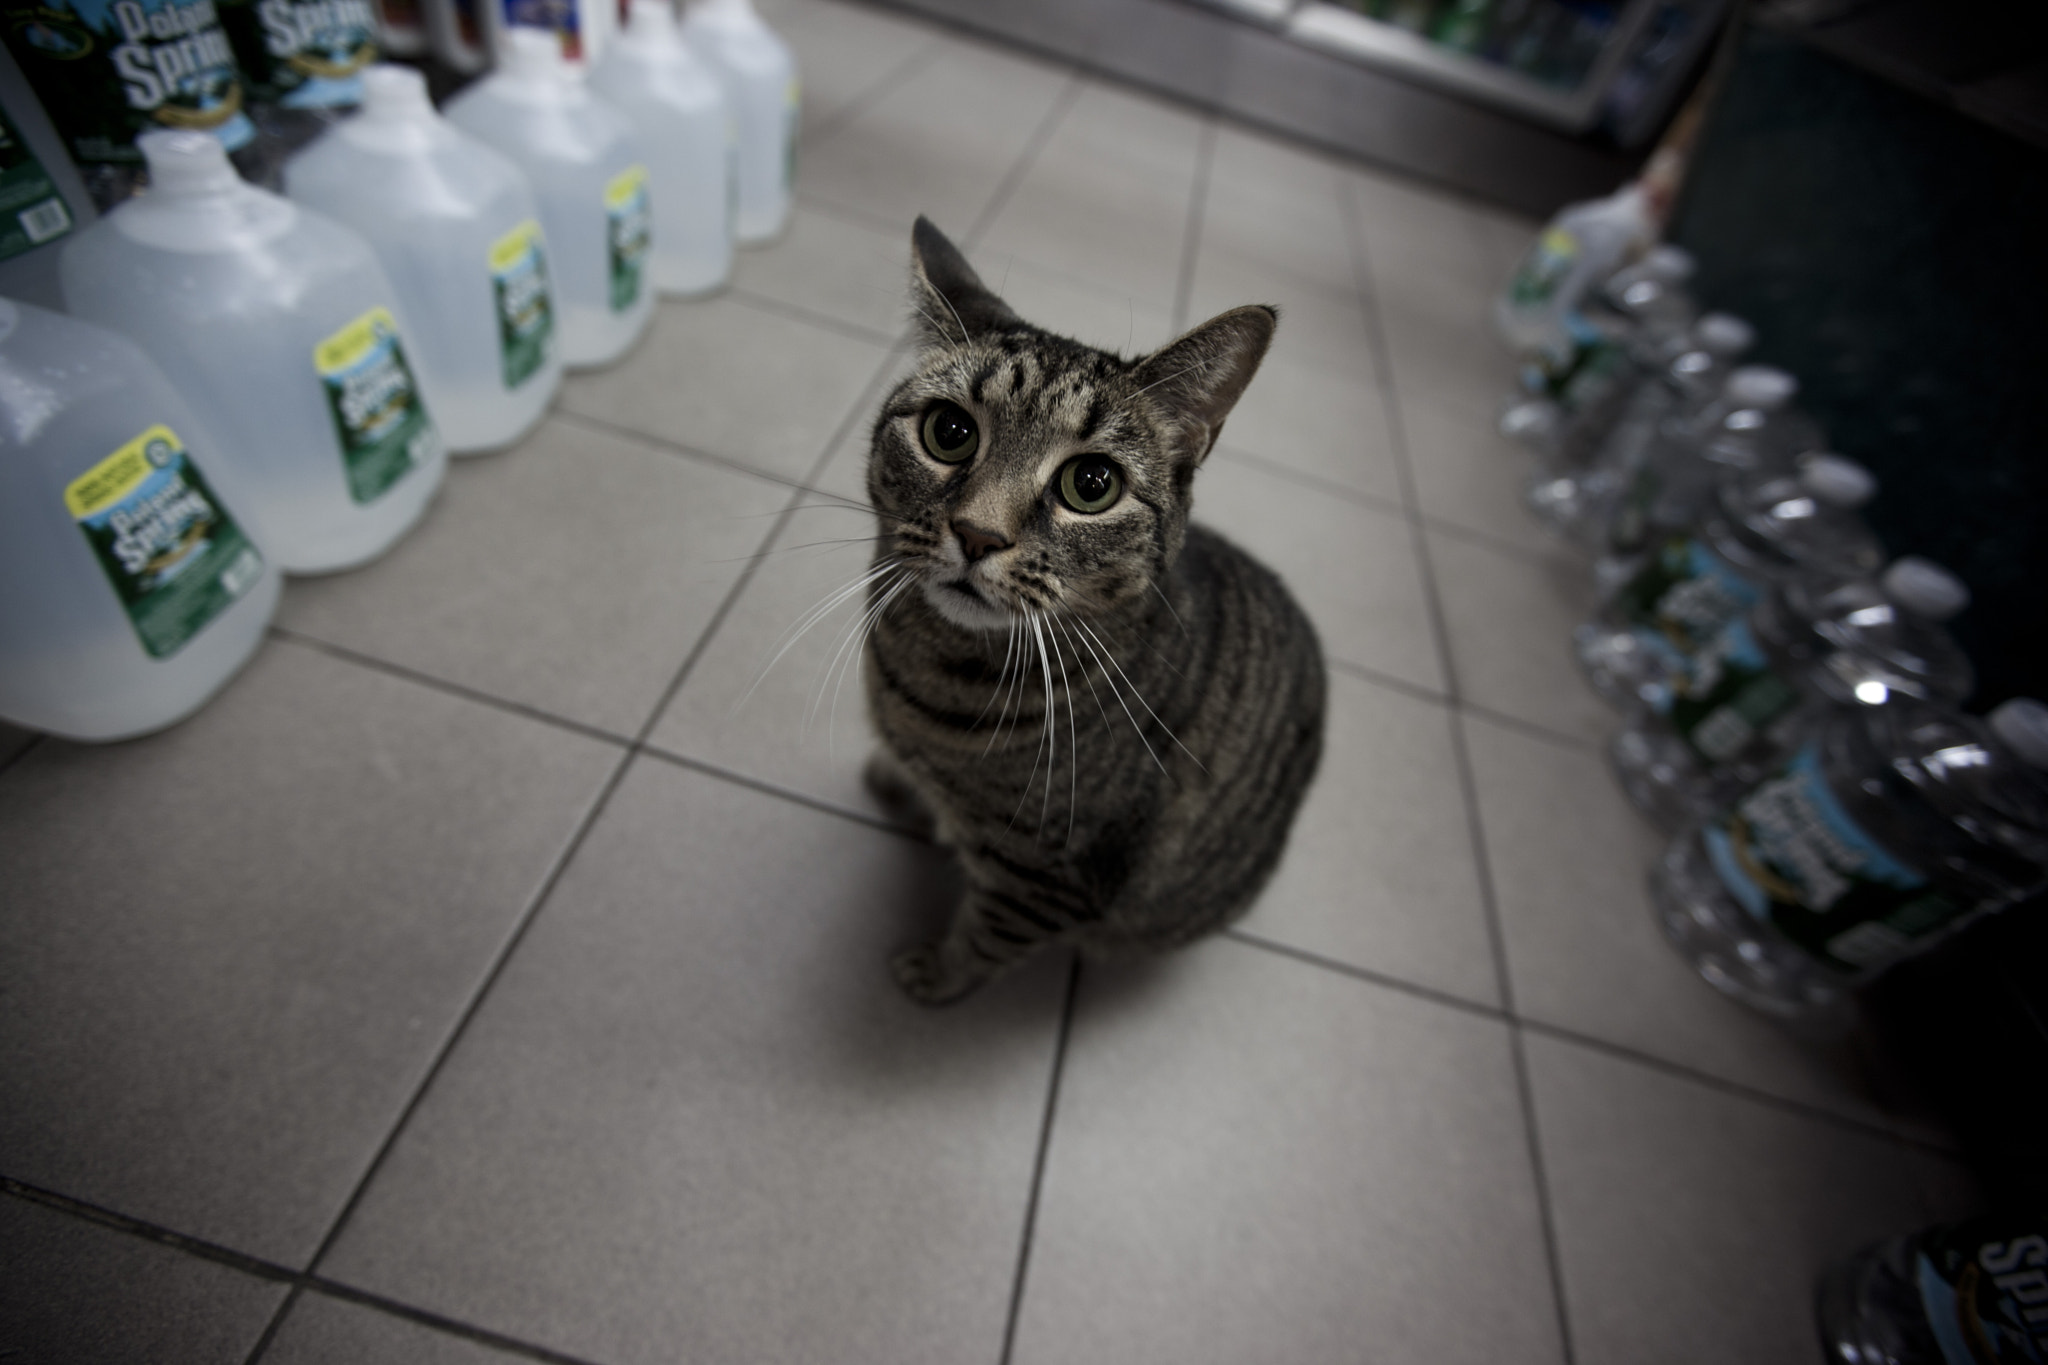 Photograph Bodega Cats by Zack McTee on 500px